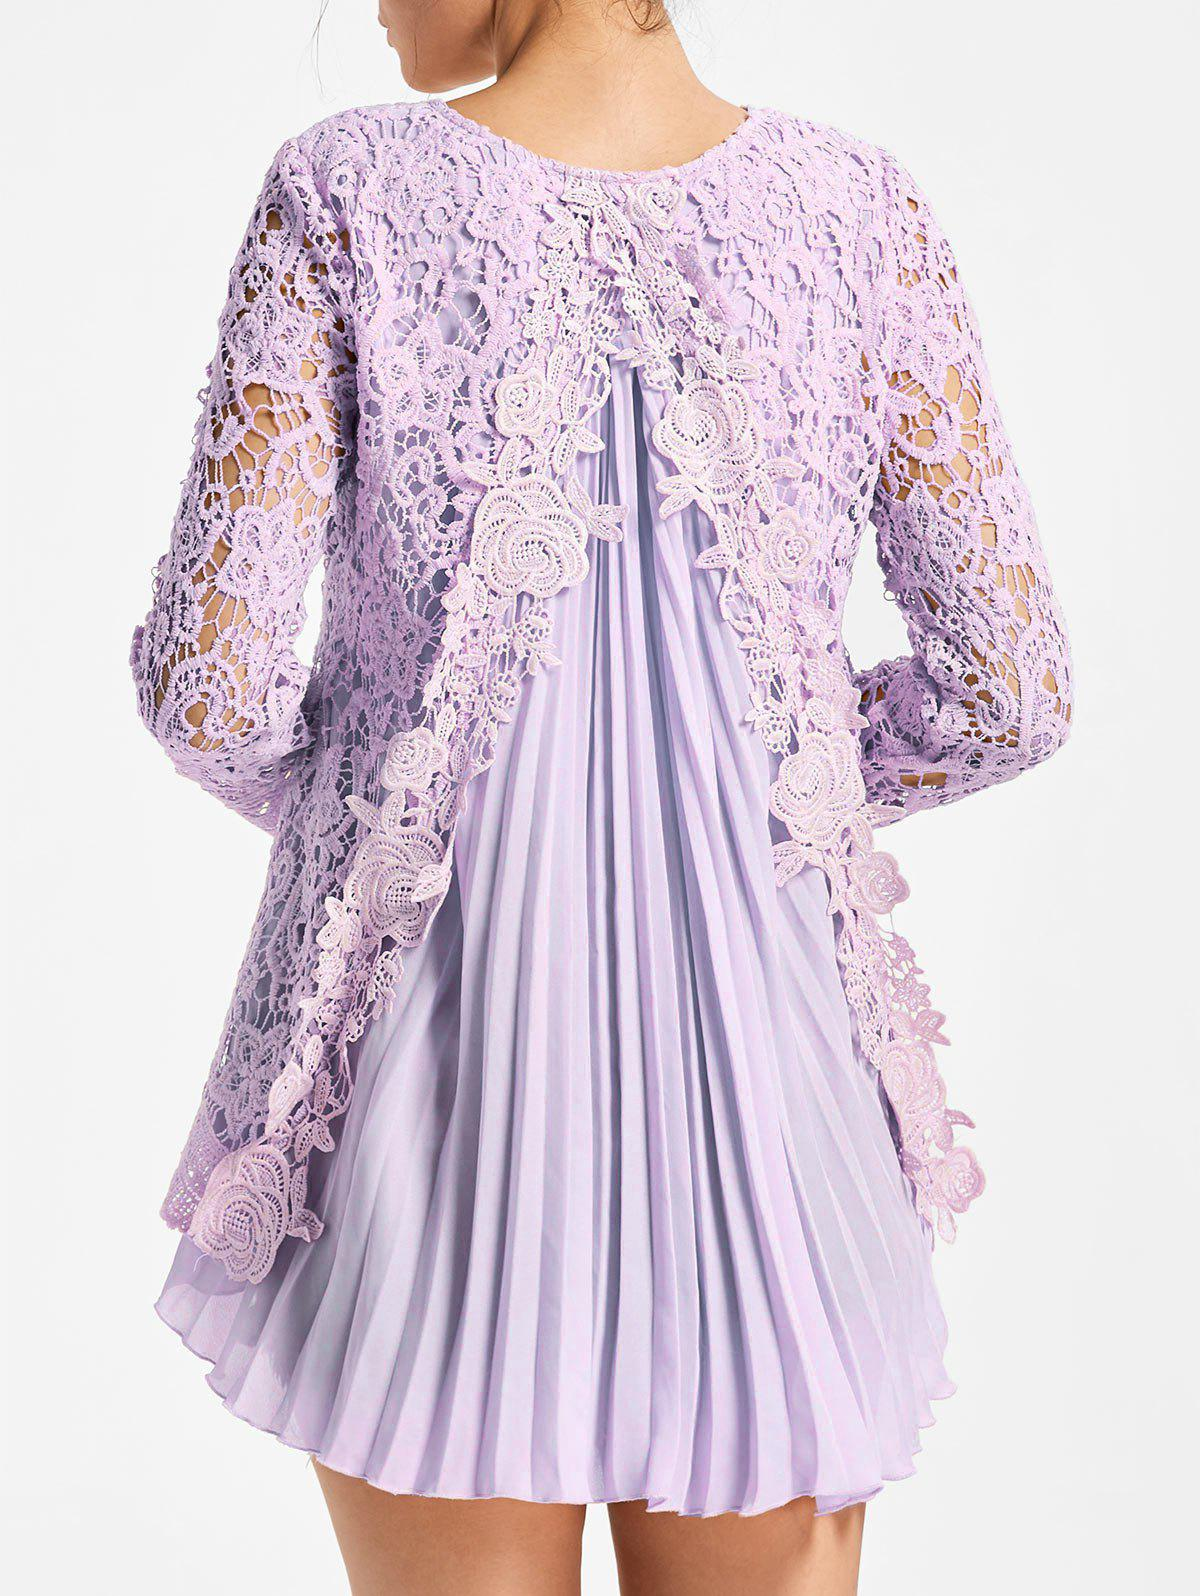 High Low Pleated Lace BlouseWOMEN<br><br>Size: XL; Color: LIGHT PURPLE; Style: Fashion; Material: Polyester; Shirt Length: Long; Sleeve Length: Full; Collar: Round Neck; Pattern Type: Patchwork,Solid; Season: Fall,Spring; Weight: 0.3500kg; Package Contents: 1 x Blouse;